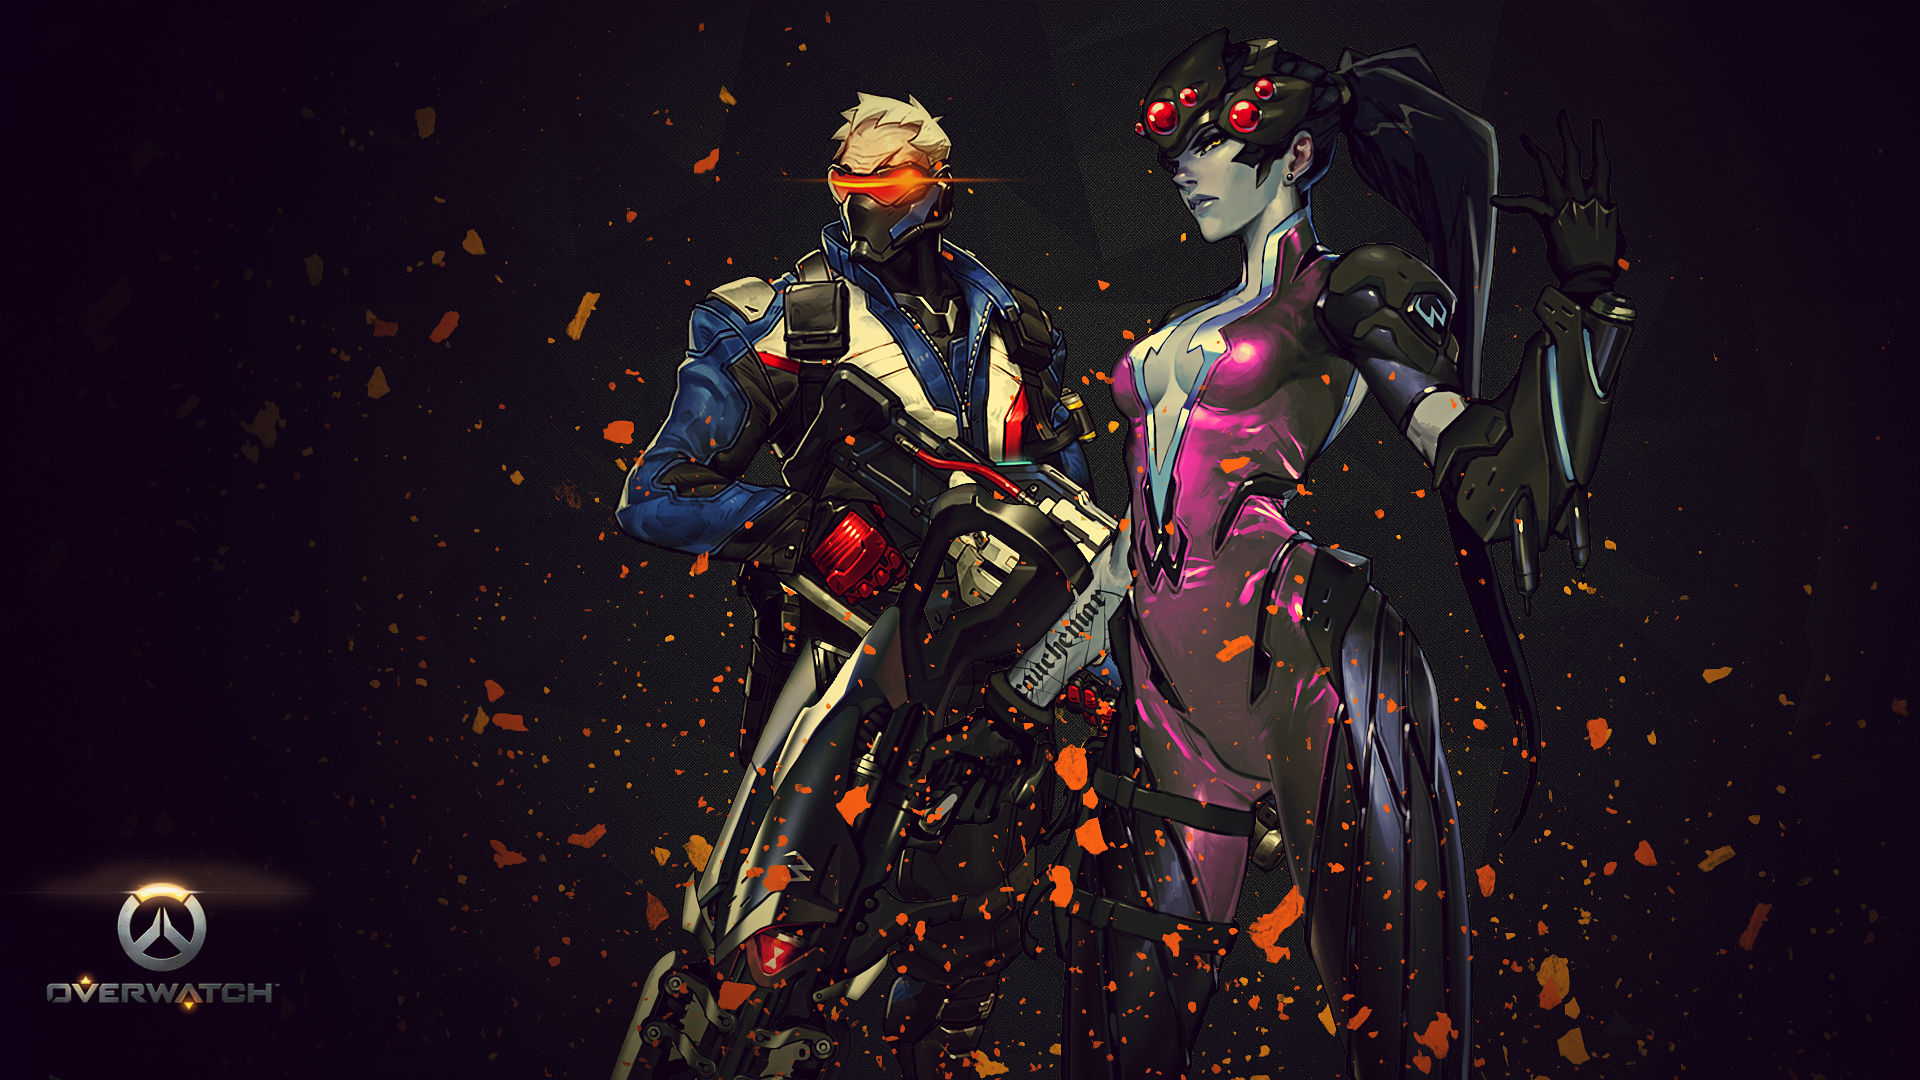 Overwatch Wallpaper Dual Monitor: 156 Widowmaker (Overwatch) HD Wallpapers